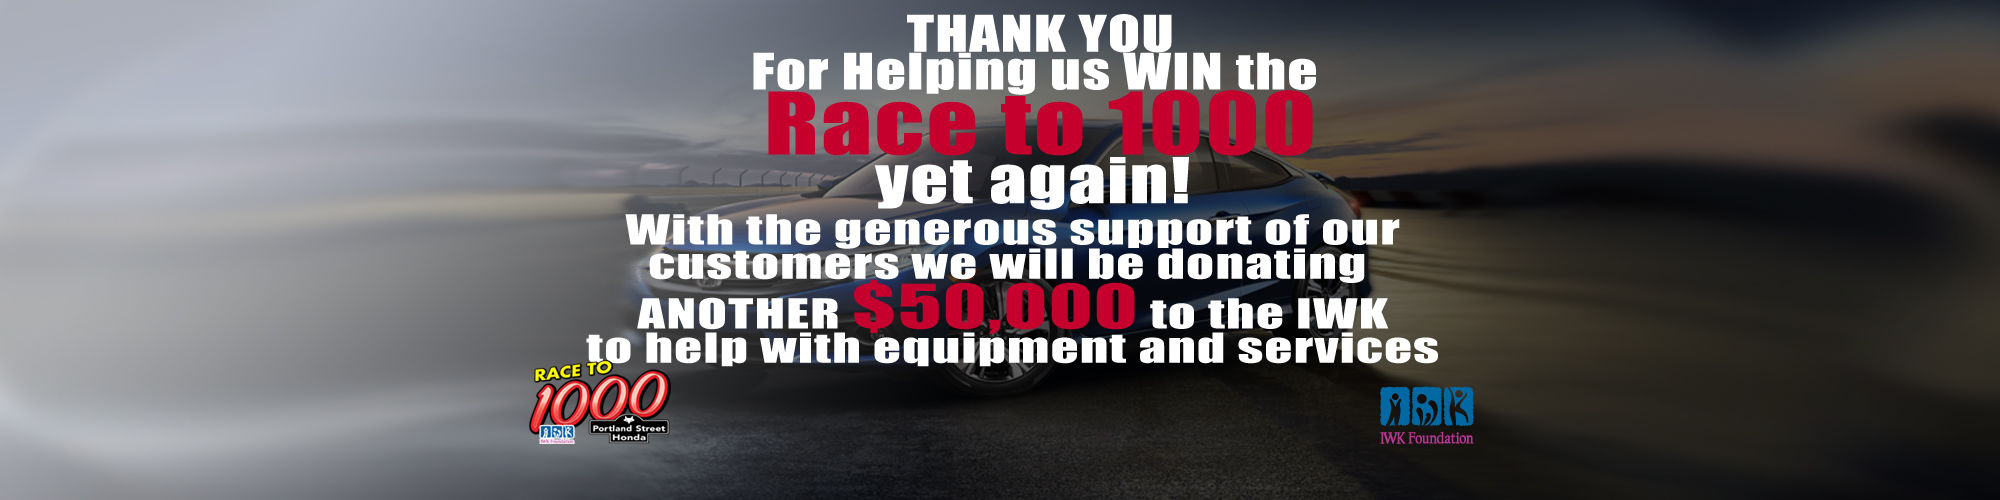 Race to 1000